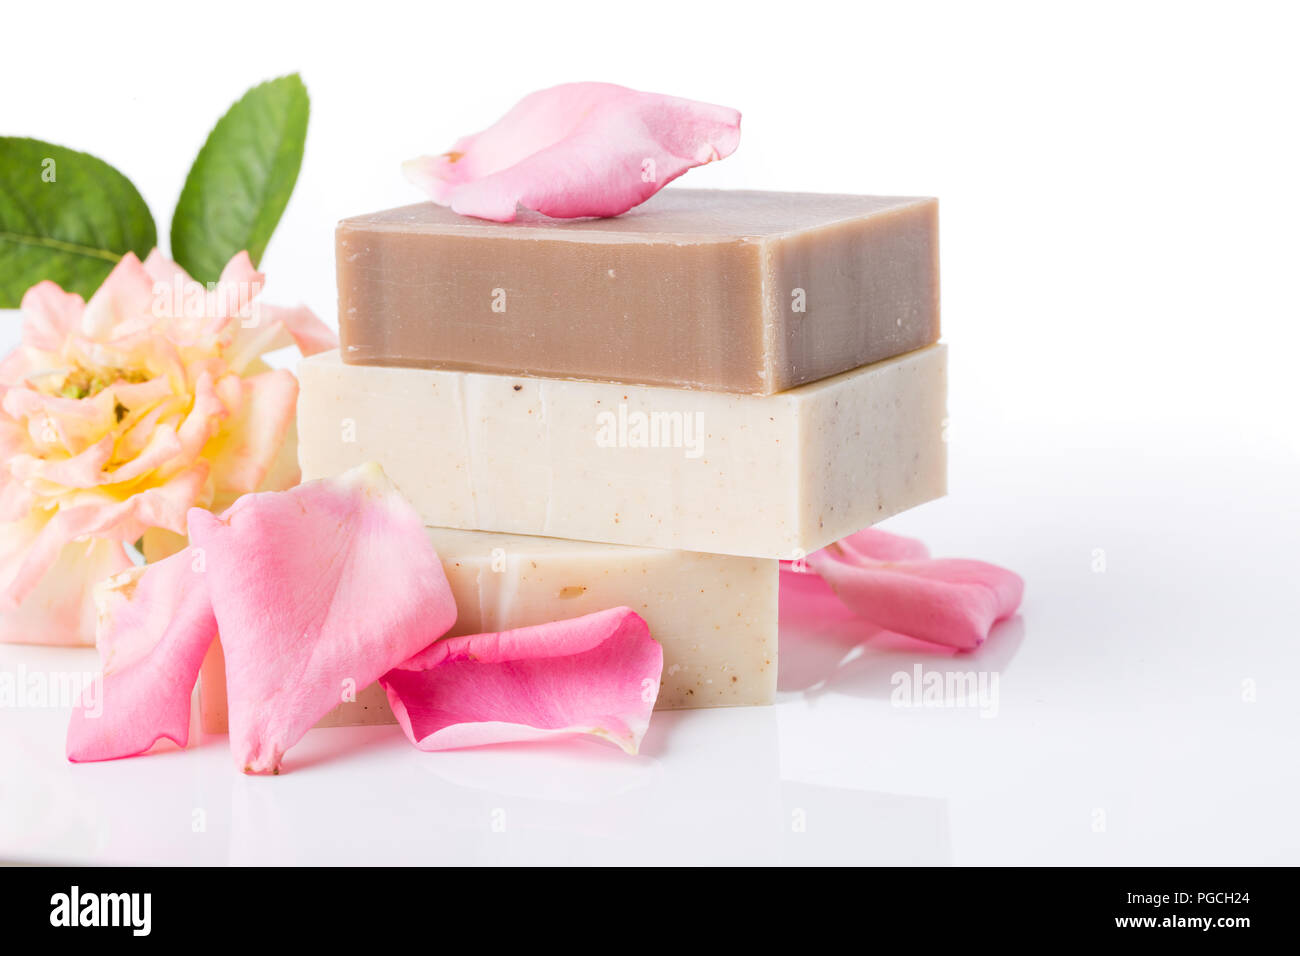 Top view of handmade soap with flower petals on white background - Stock Image